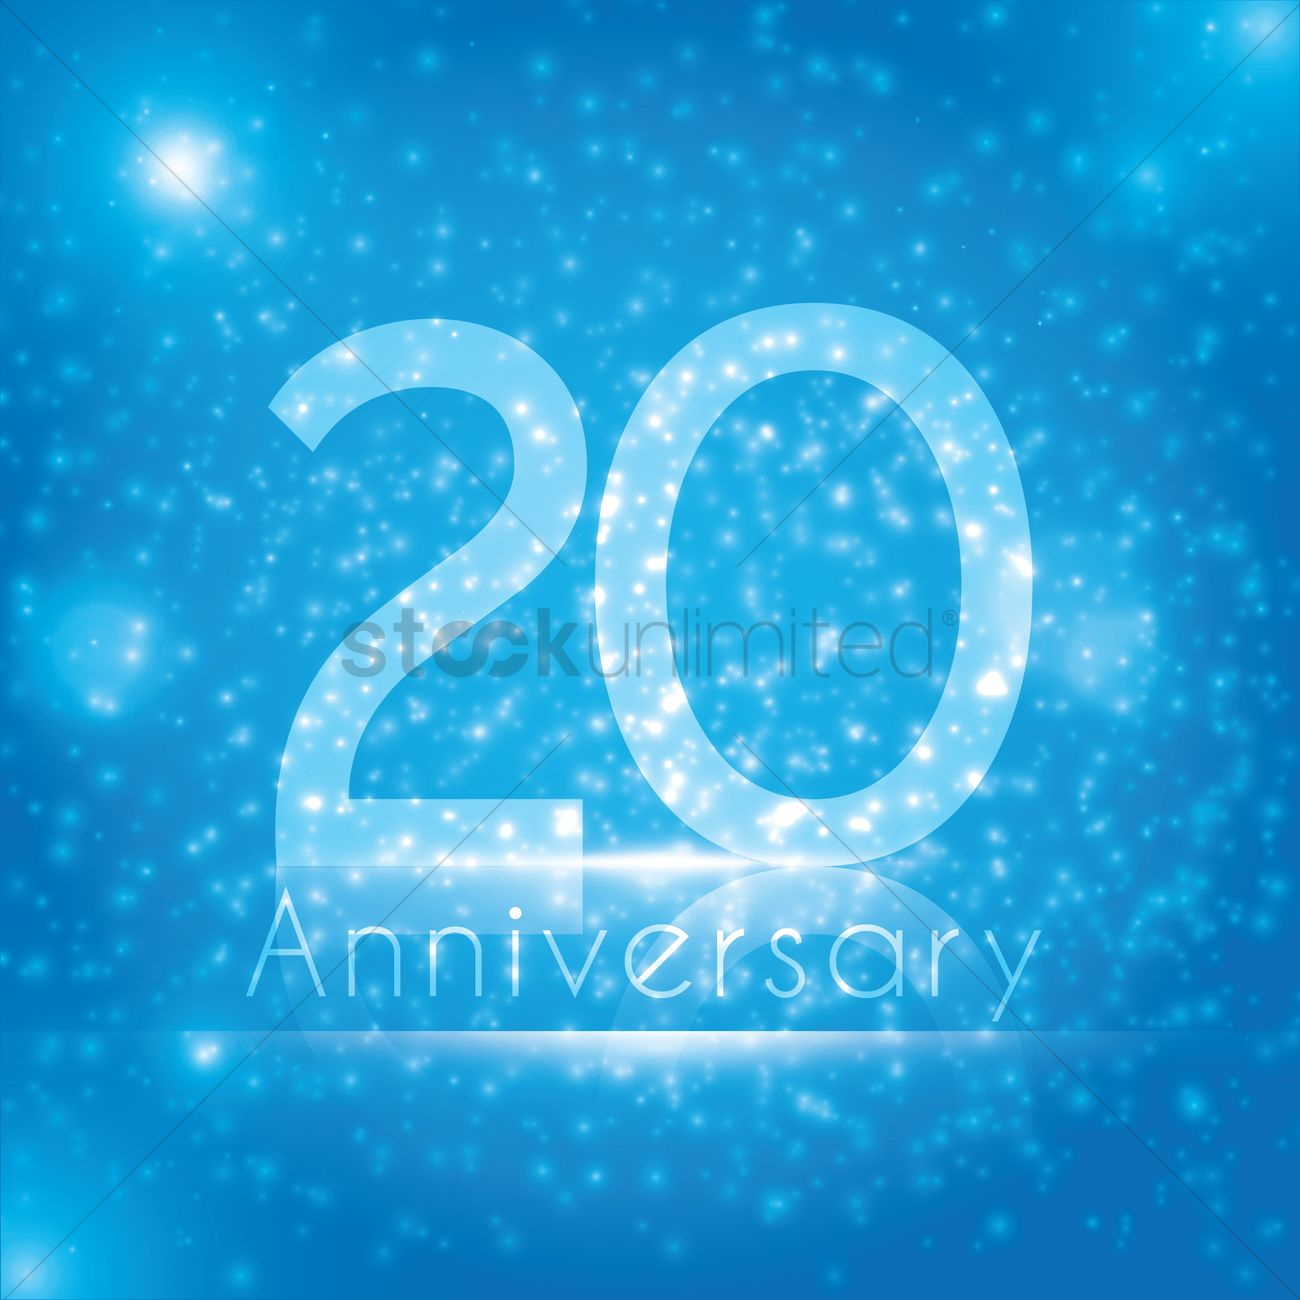 20th Anniversary Wallpaper Vector Image 1813139 Stockunlimited Images, Photos, Reviews